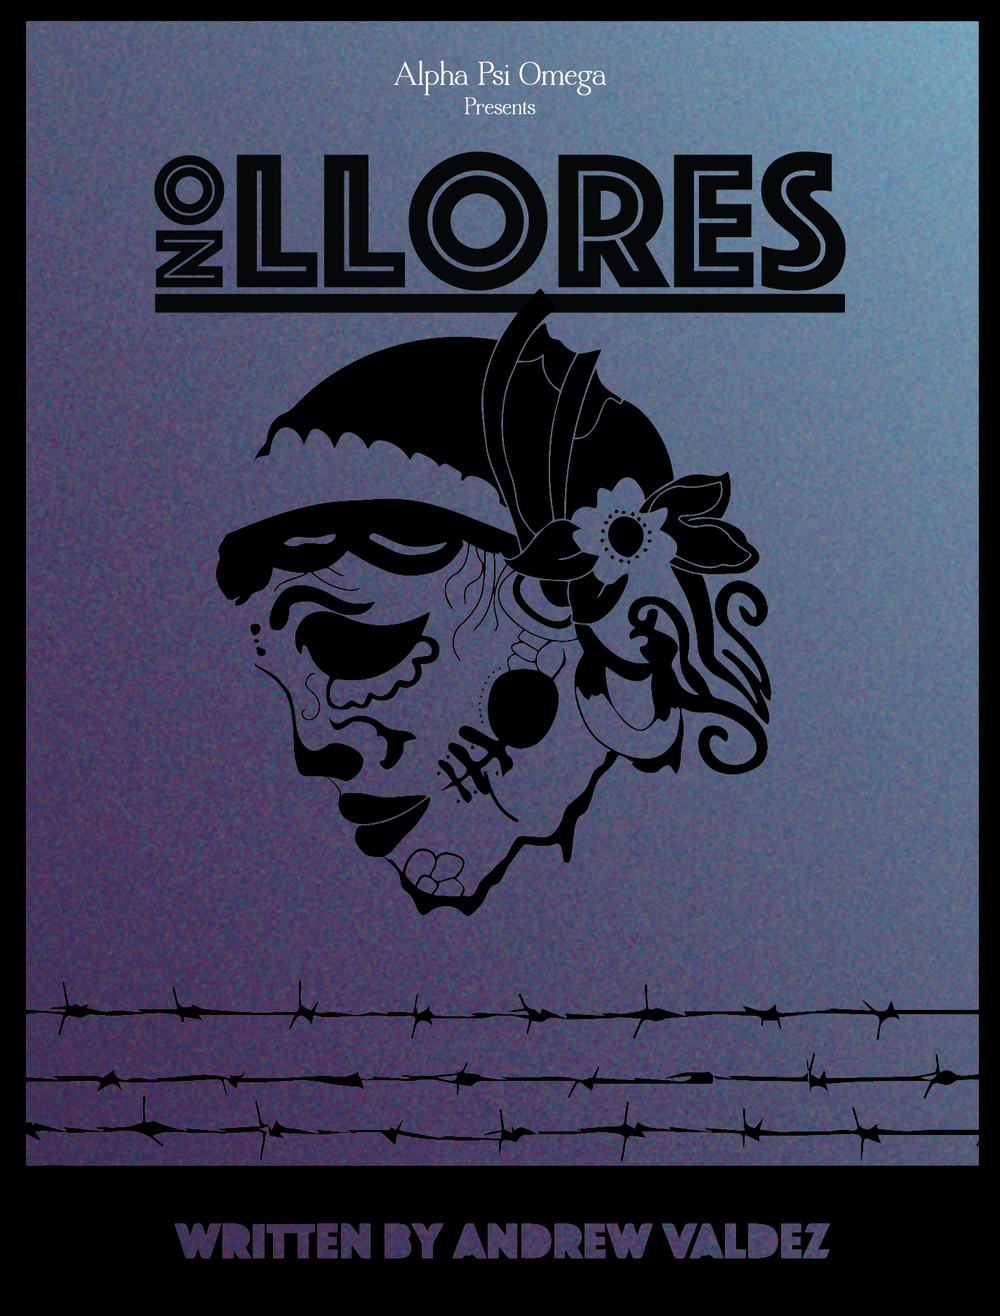 No Llores    by Andrew A. Valdez    (Alpha Psi Omega New Theatre 2014)       Without health insurance or the ability to speak english a mother must turn to an assortment of wacky characters to treat her terminally ill son.